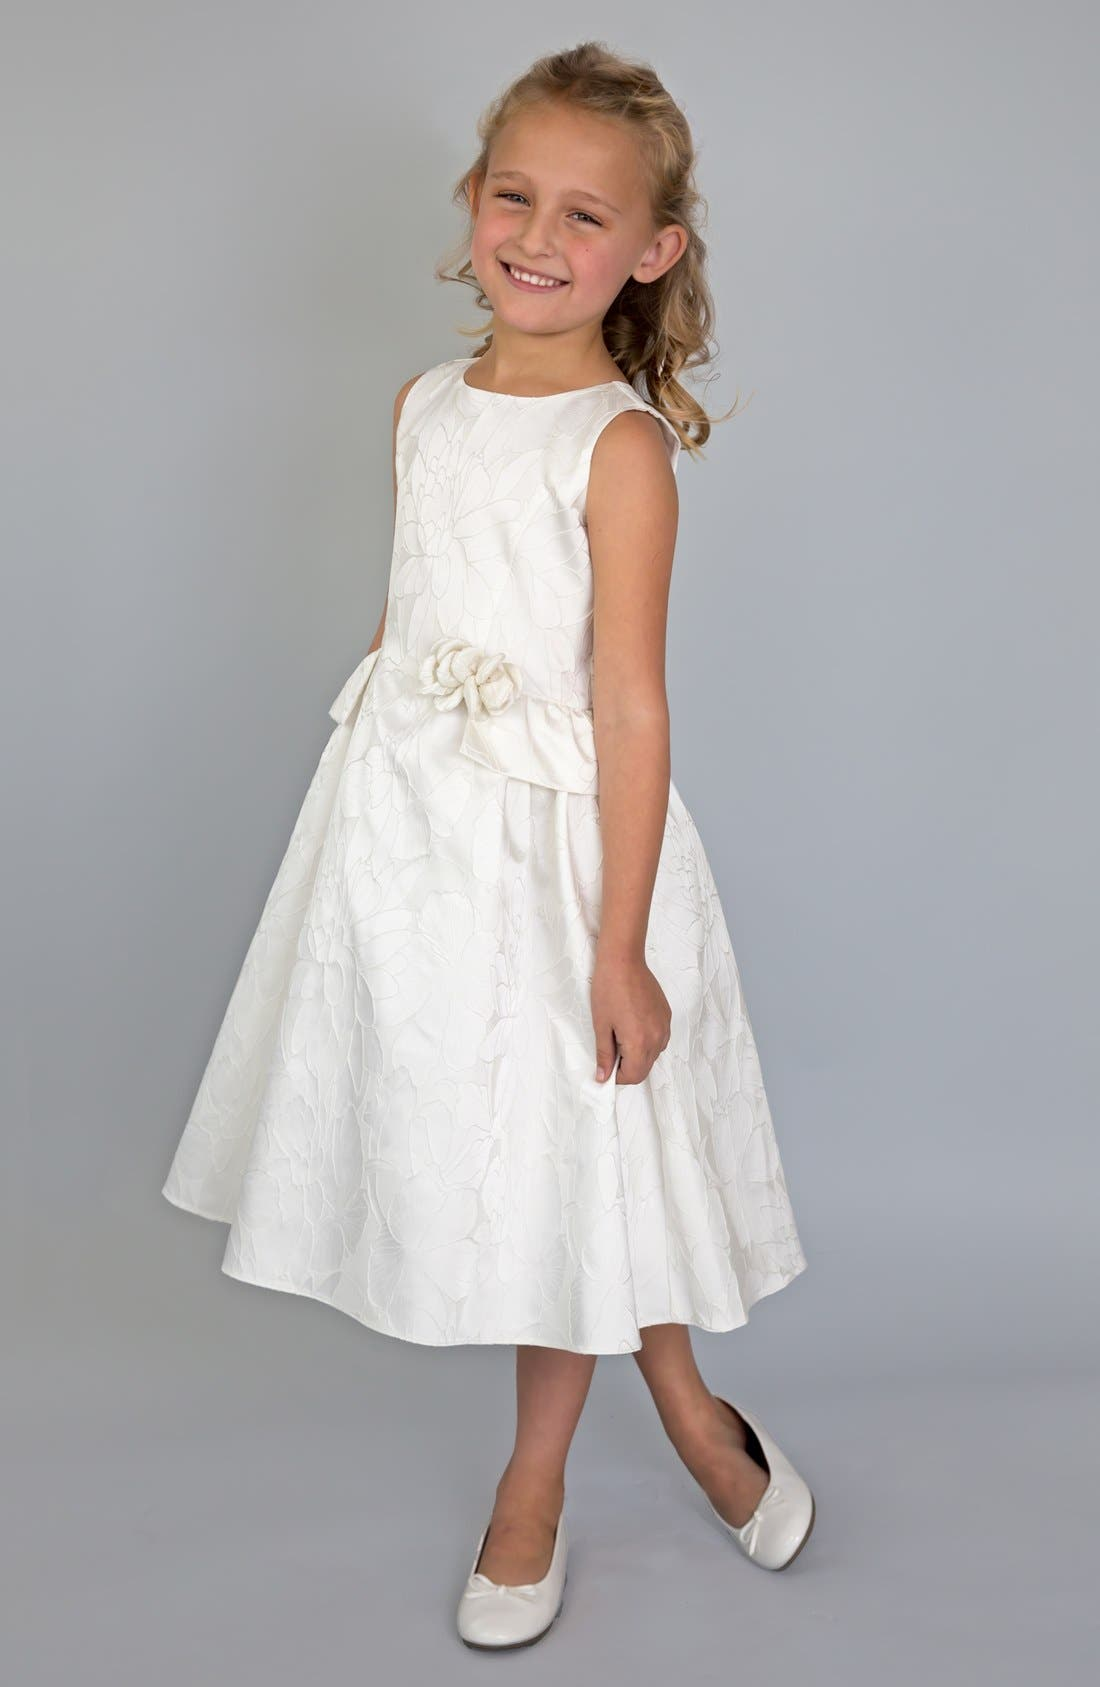 Alternate Image 1 Selected - Us Angels Peplum Brocade Dress (Toddler Girls, Little Girls & Big Girls)